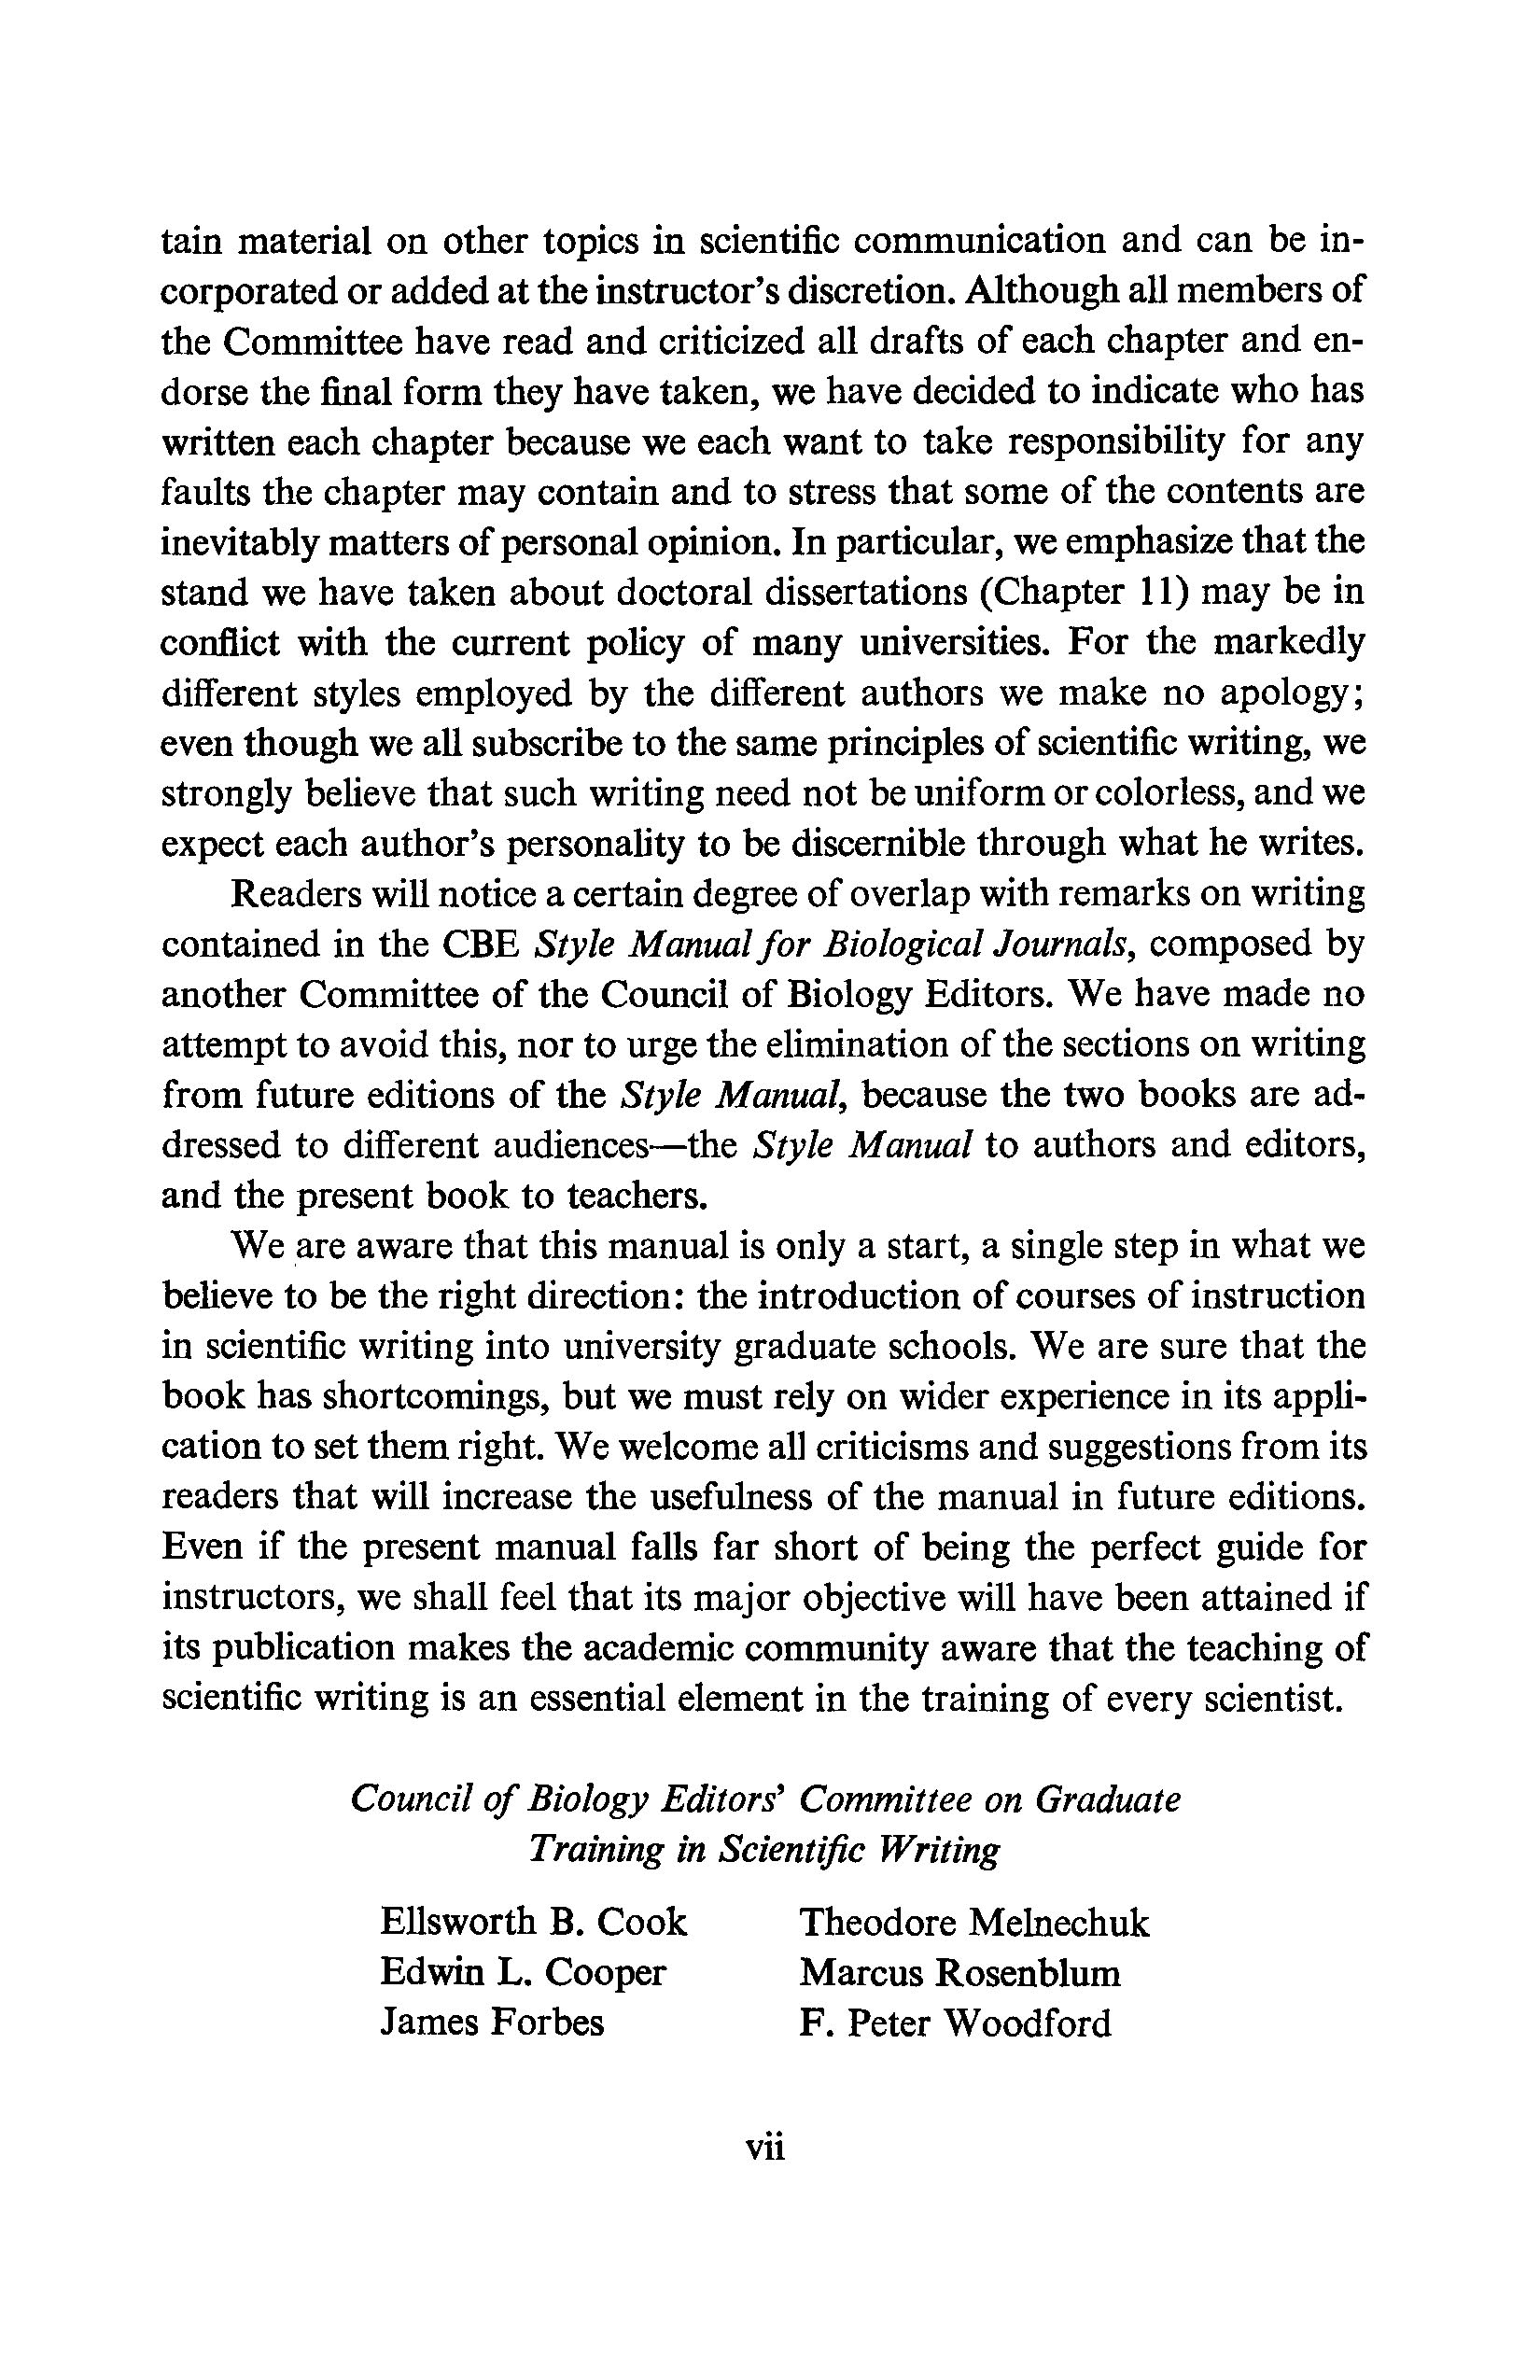 scientific writing for graduate students The science of scientific writing is a thoroughly detailed and important article about scientific writing from the journal american scientist you will find practical advice on how (literally) to put sentences together and walk along with the authors as they methodically generate seven practical maxims for good science writing.